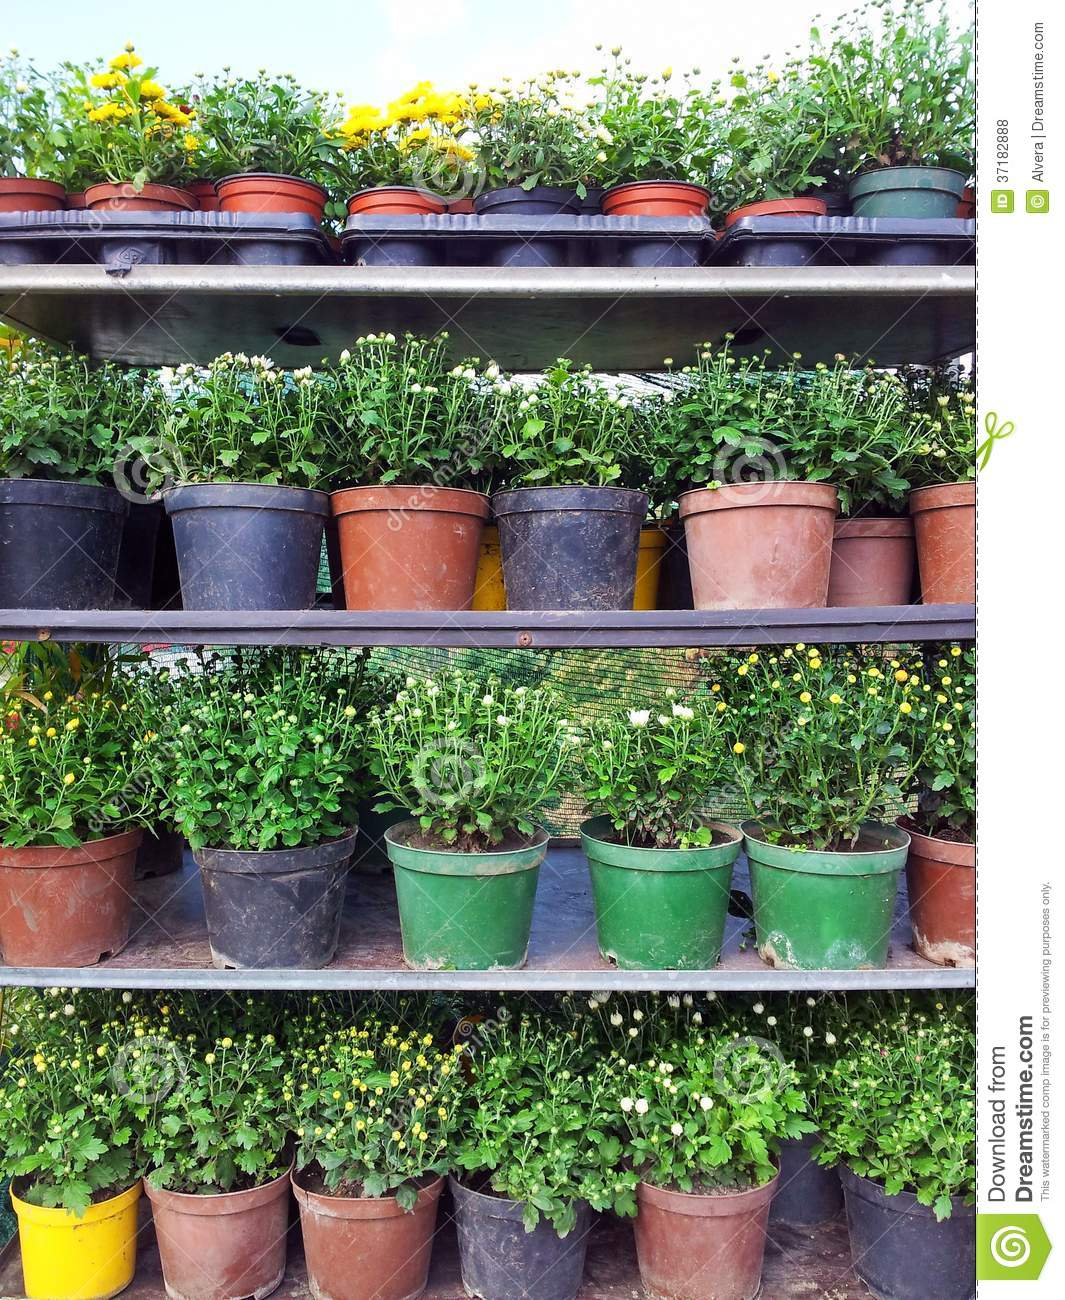 Flower Pots For Sale Royalty Free Stock Photos Image 37182888